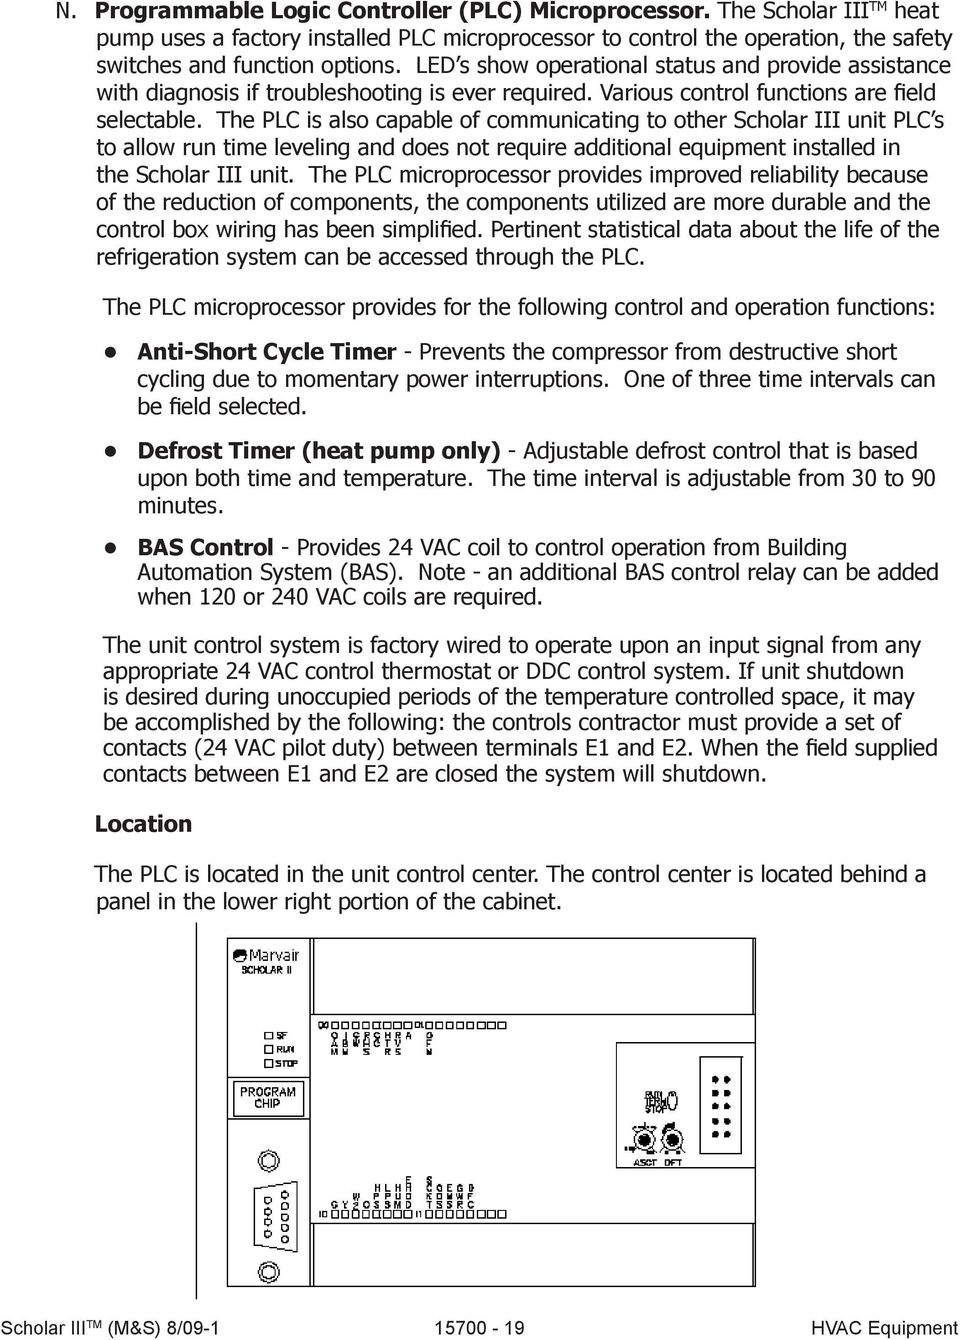 Scholar Iii Heat Pumps Air Conditioners Pdf Hvac Defrost Timer Wiring The Plc Is Also Capable Of Communicating To Other Unit S Allow